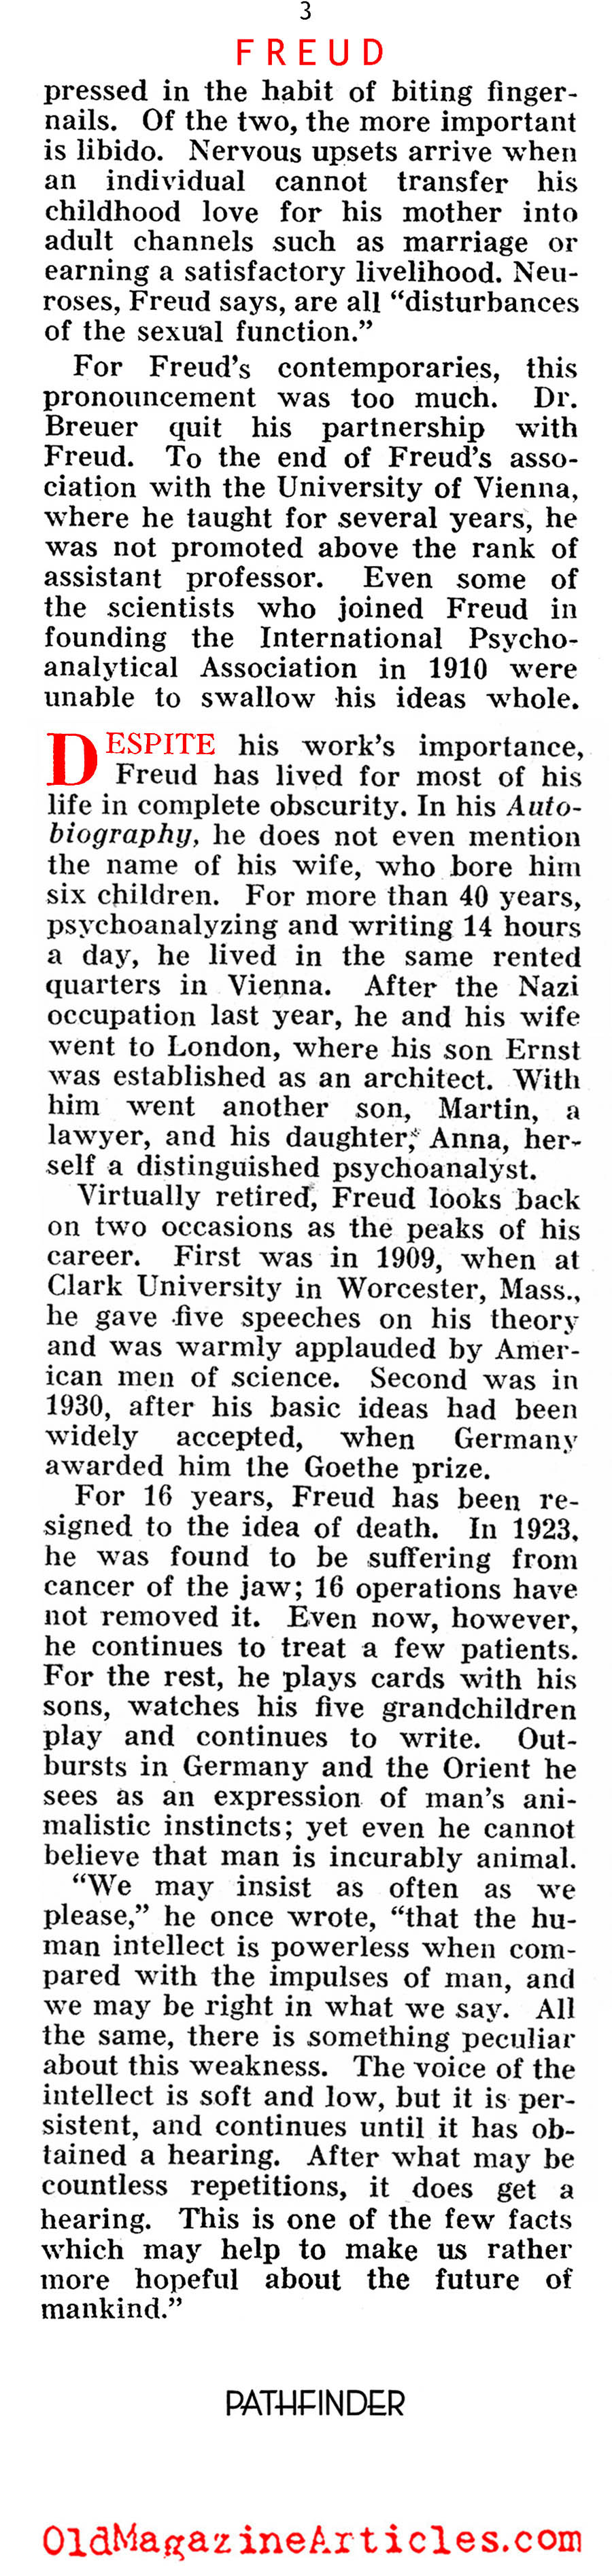 Dr. Freud (Pathfinder Magazine, 1939)